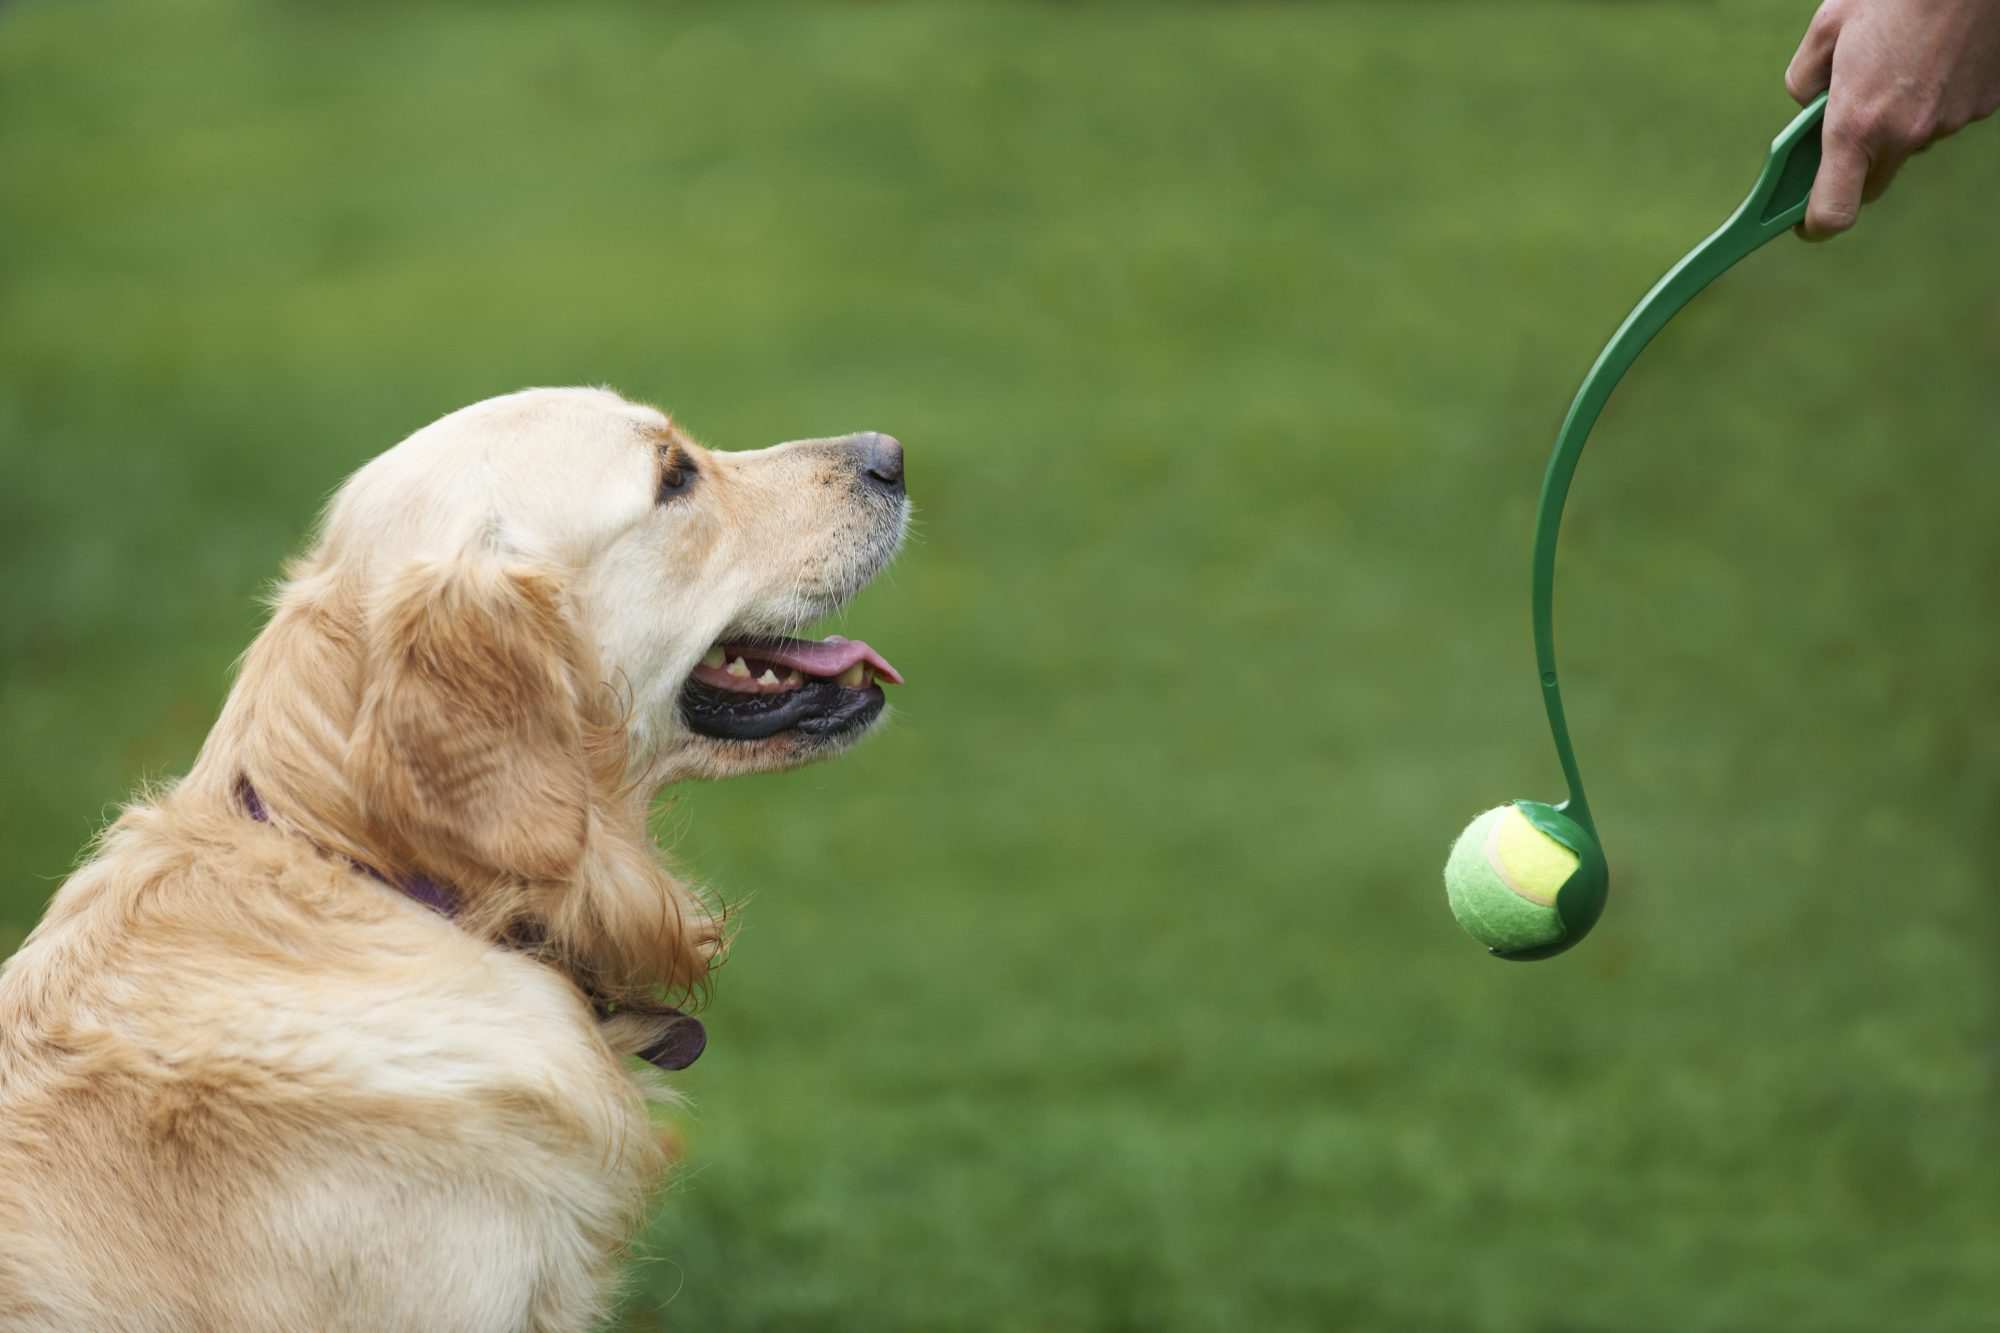 Dog with Ball Thrower